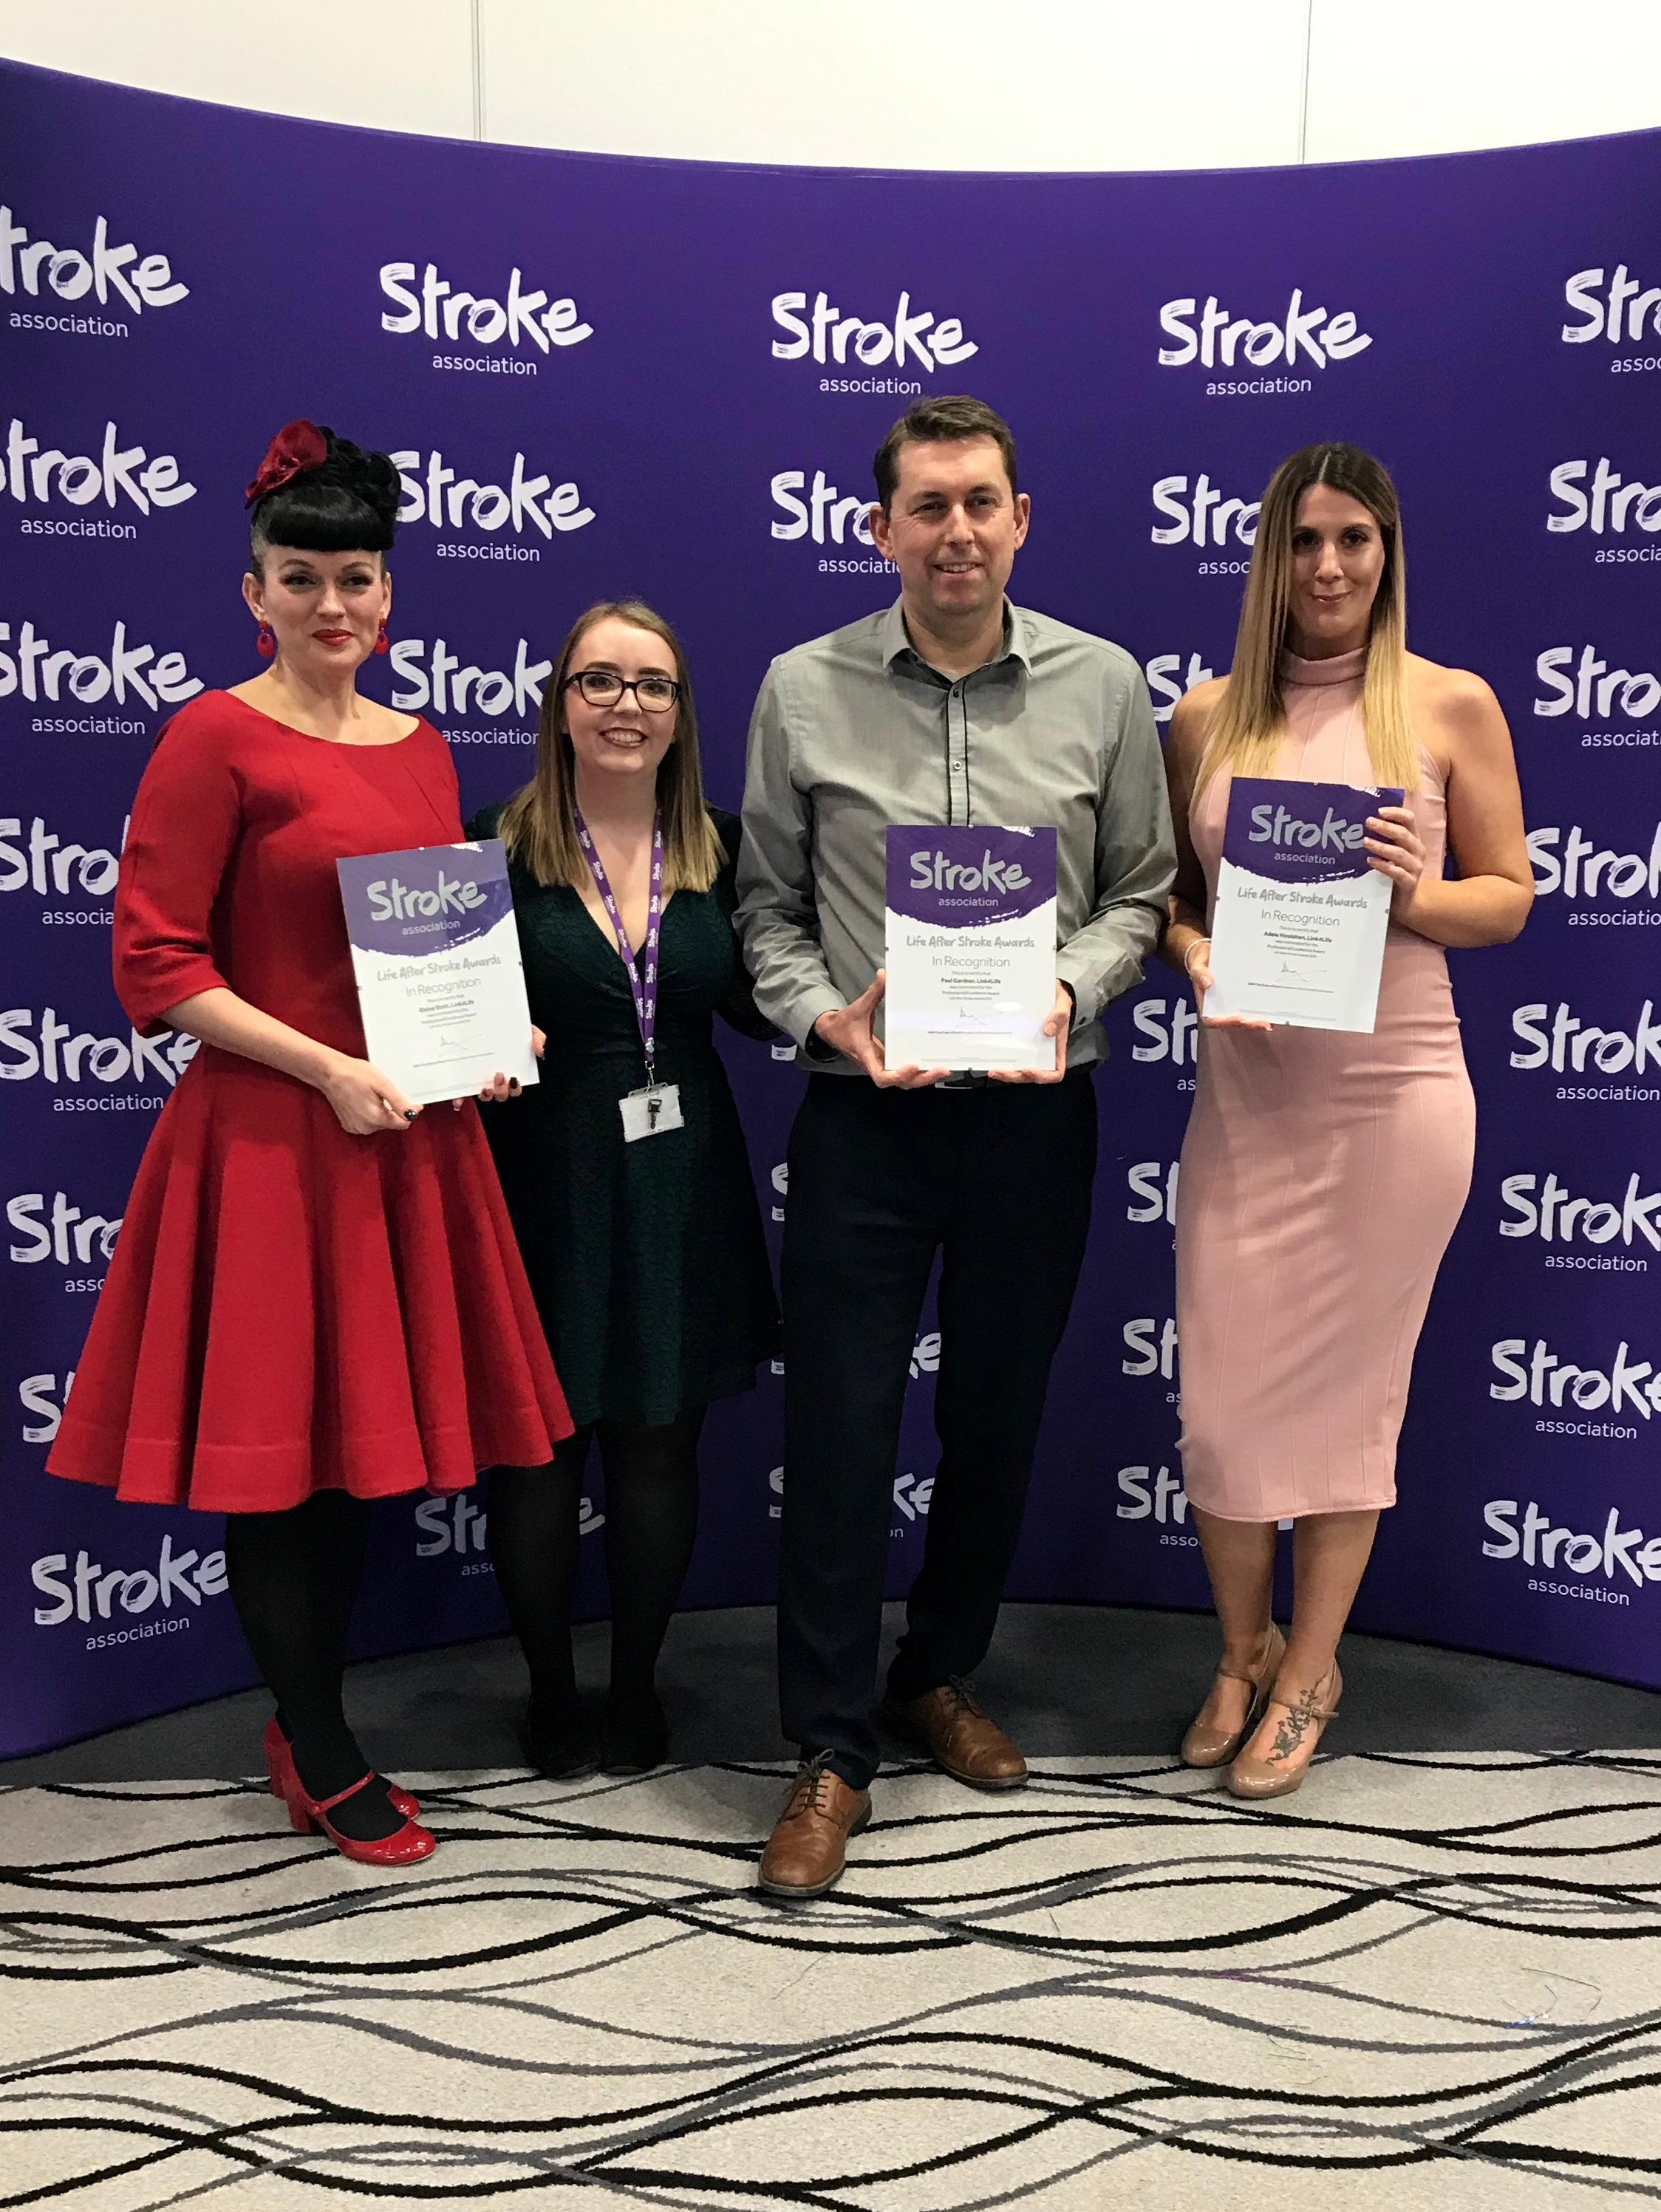 Featured image for Stroke charity awards highlights great work by Link4Life staff and volunteers